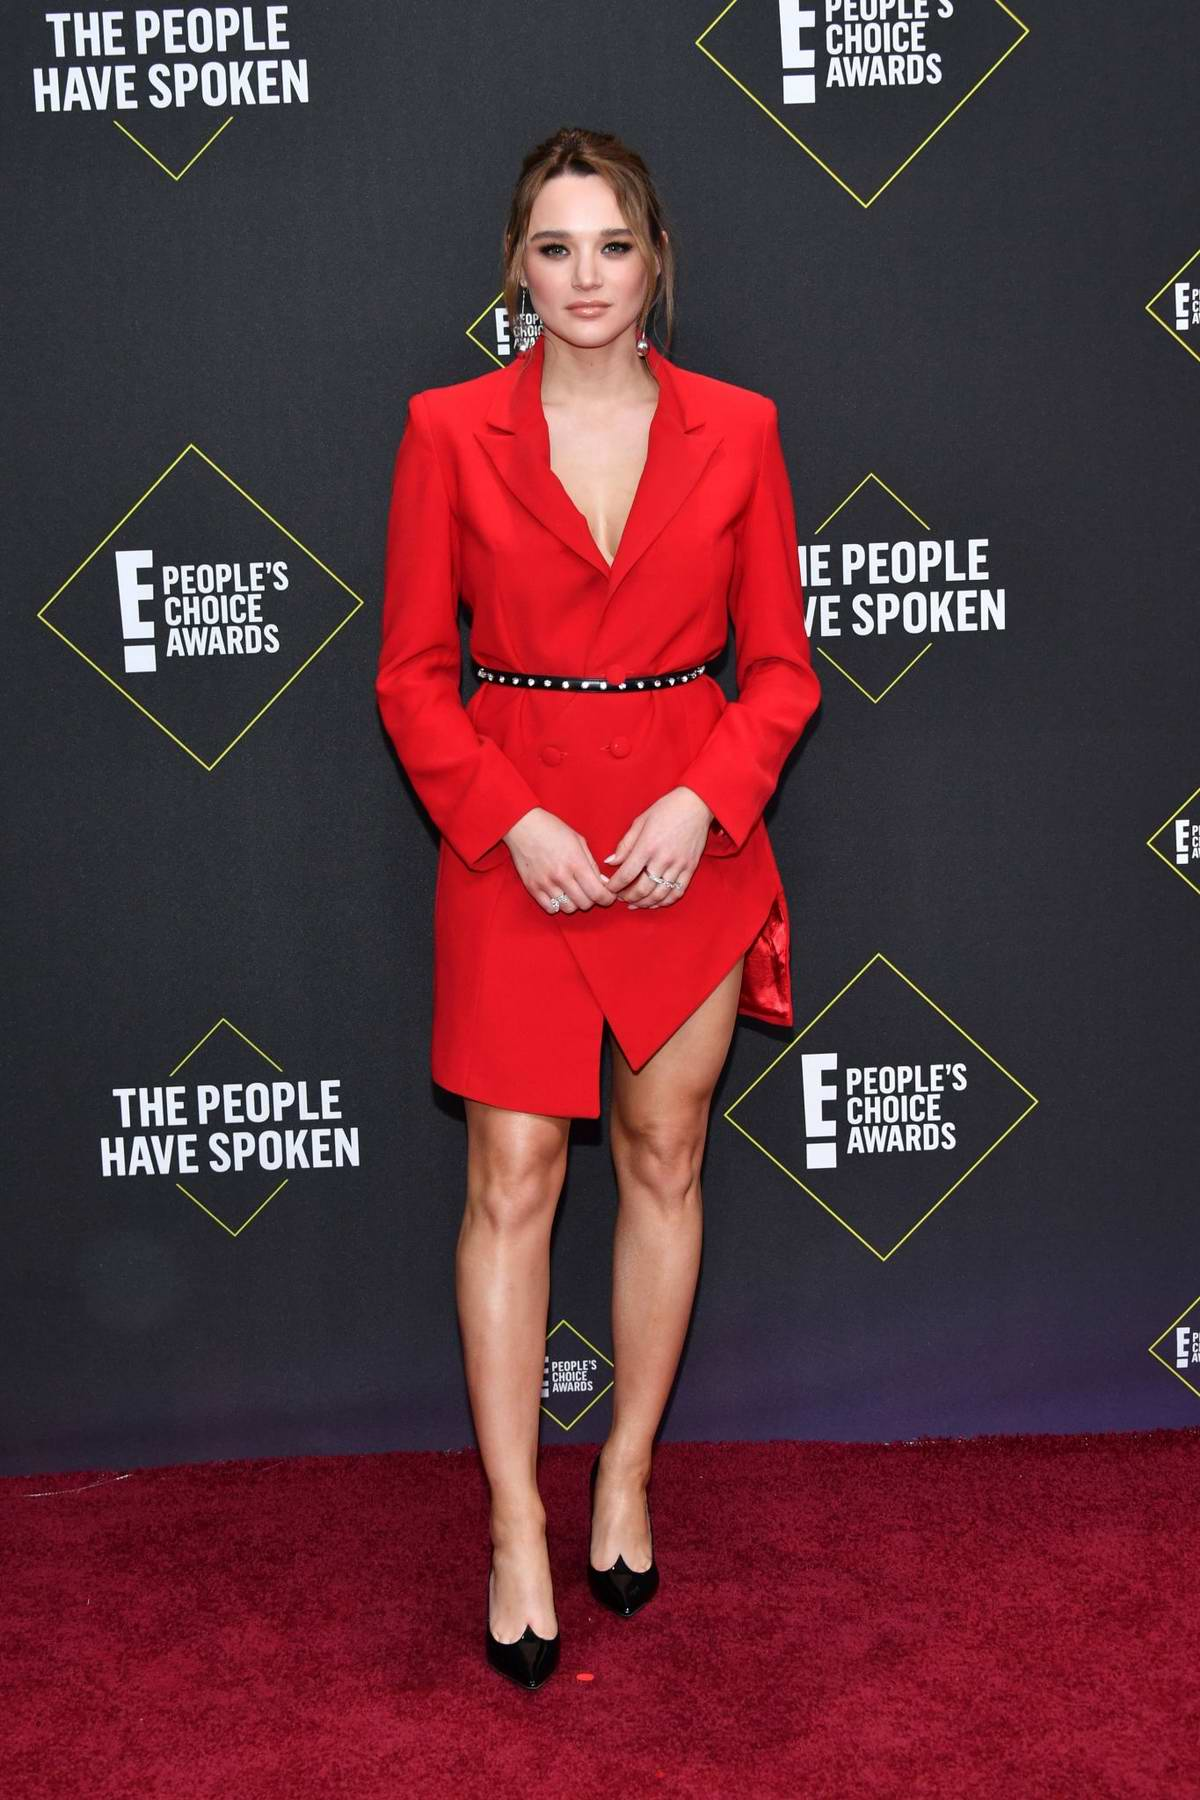 Hunter King attends the 2019 E! People's Choice Awards held at the Barker Hangar in Santa Monica, California